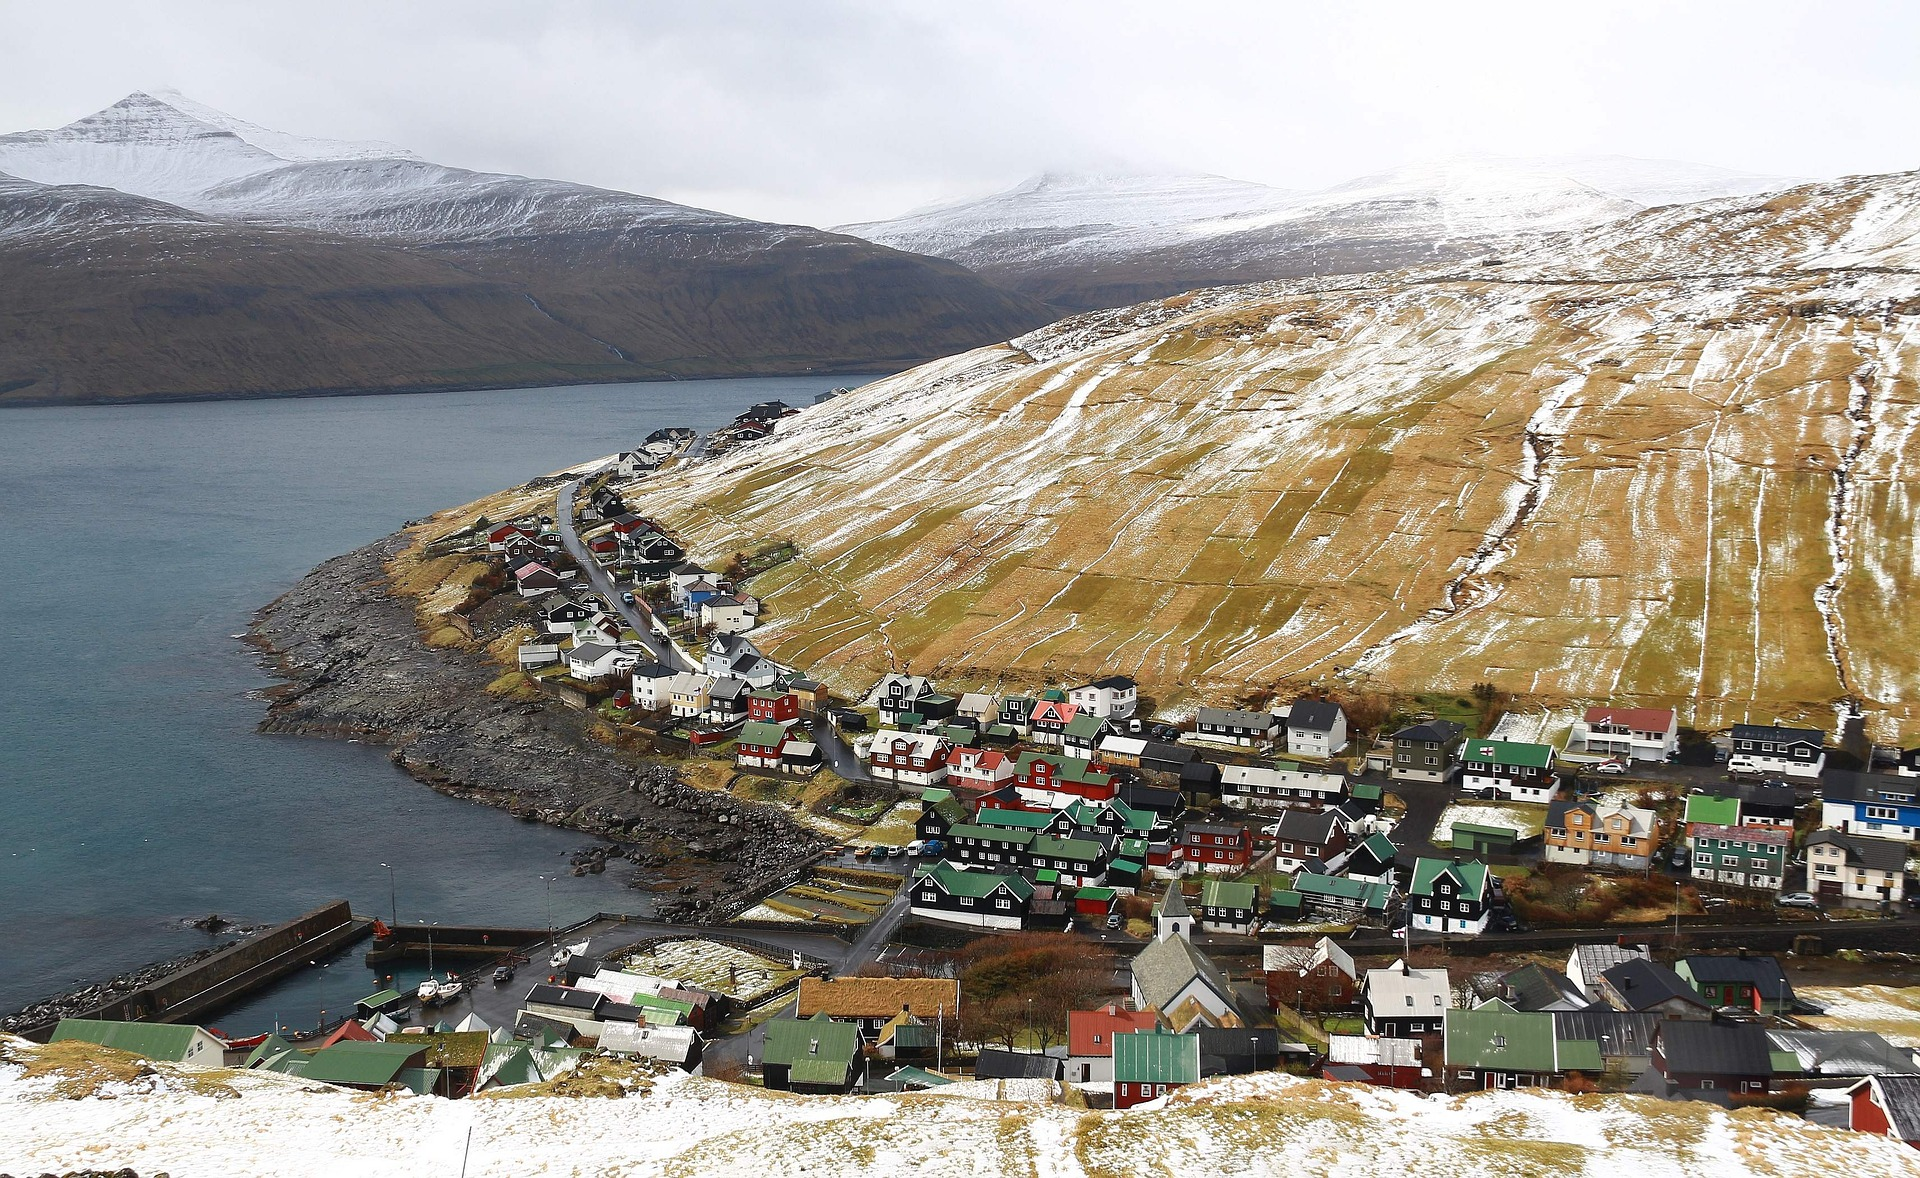 6. Faroe Islands